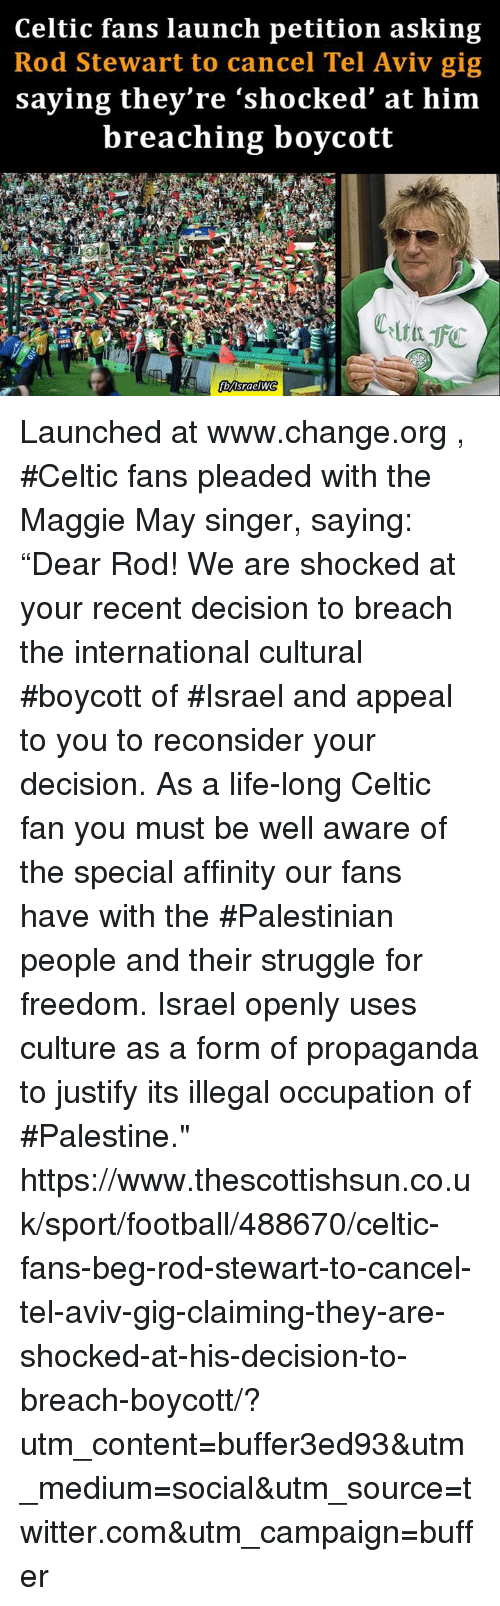 """Celtic, Memes, and Celtics: Celtic fans launch petition asking  Rod Stewart to cancel Tel Aviv gig  saying they're """"shocked at him  breaching boycott Launched at www.change.org , #Celtic fans pleaded with the Maggie May singer, saying: """"Dear Rod! We are shocked at your recent decision to breach the international cultural #boycott of #Israel and appeal to you to reconsider your decision. As a life-long Celtic fan you must be well aware of the special affinity our fans have with the #Palestinian people and their struggle for freedom. Israel openly uses culture as a form of propaganda to justify its illegal occupation of #Palestine."""" https://www.thescottishsun.co.uk/sport/football/488670/celtic-fans-beg-rod-stewart-to-cancel-tel-aviv-gig-claiming-they-are-shocked-at-his-decision-to-breach-boycott/?utm_content=buffer3ed93&utm_medium=social&utm_source=twitter.com&utm_campaign=buffer"""